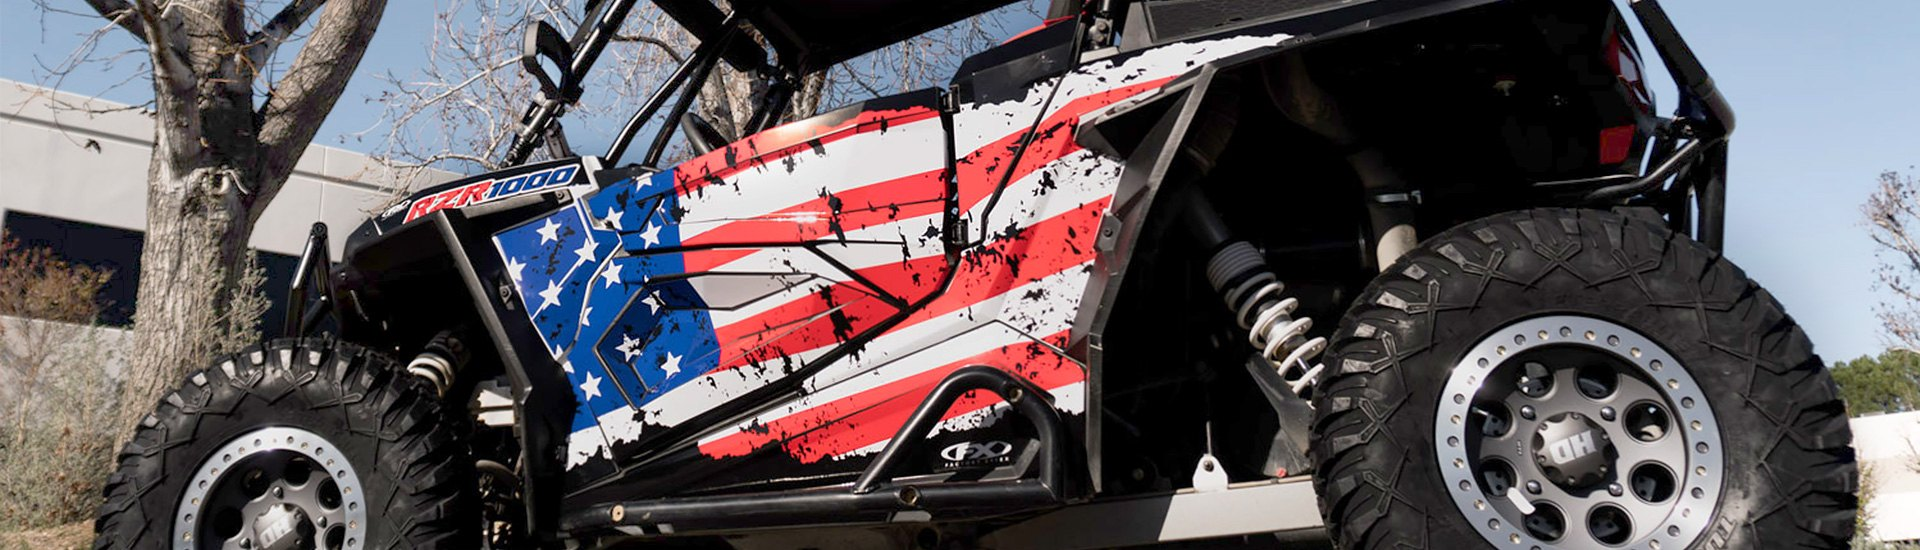 hight resolution of powersports graphics decals